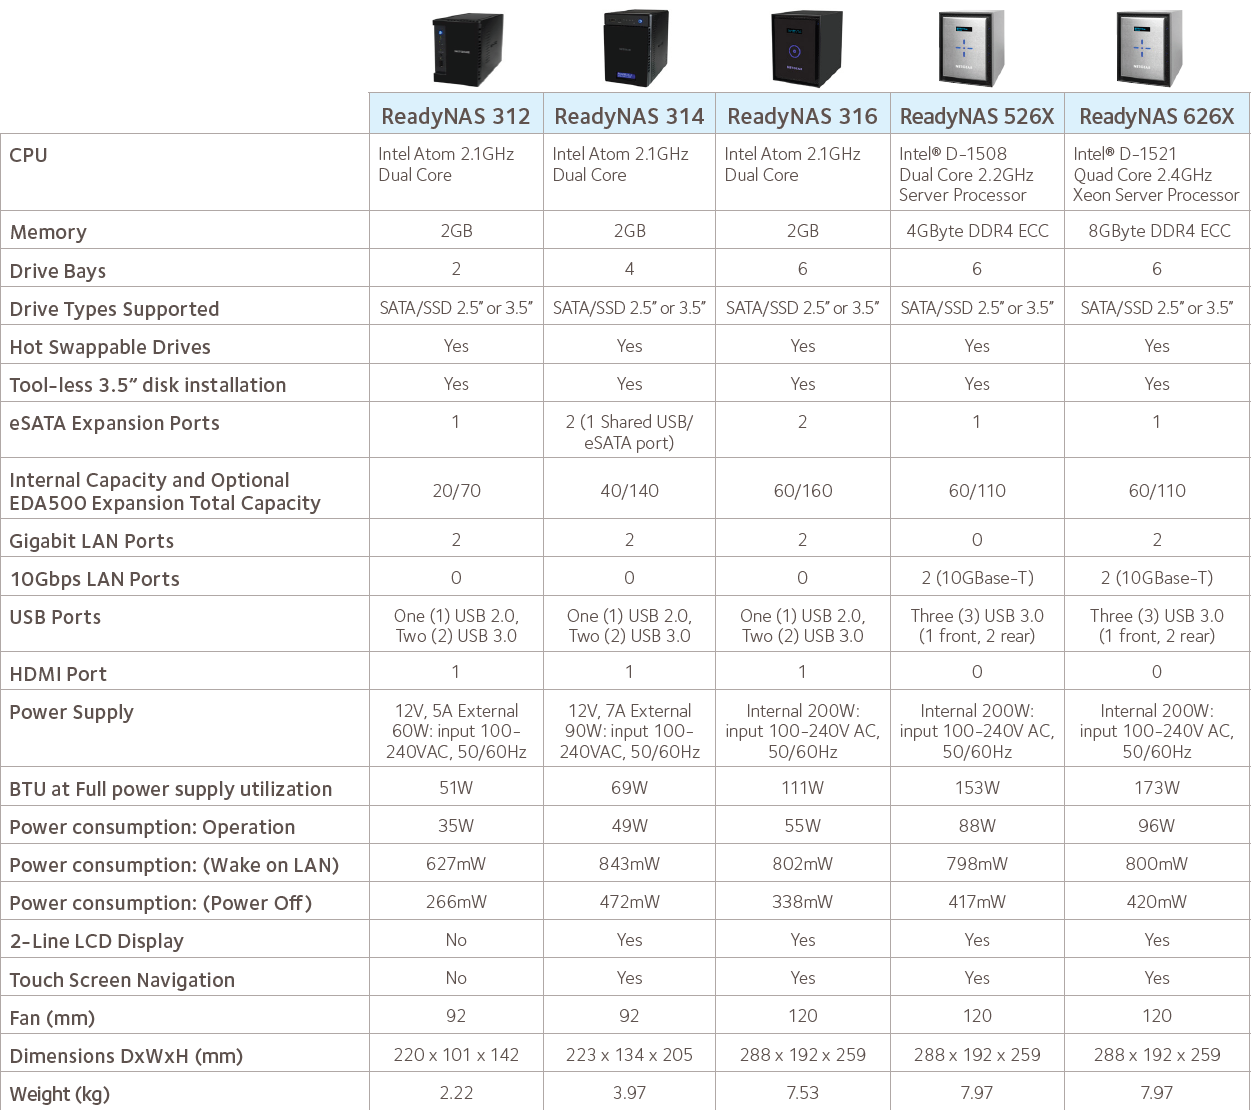 Netgear Brings Broadwell-DE to COTS NAS Units with New 10G